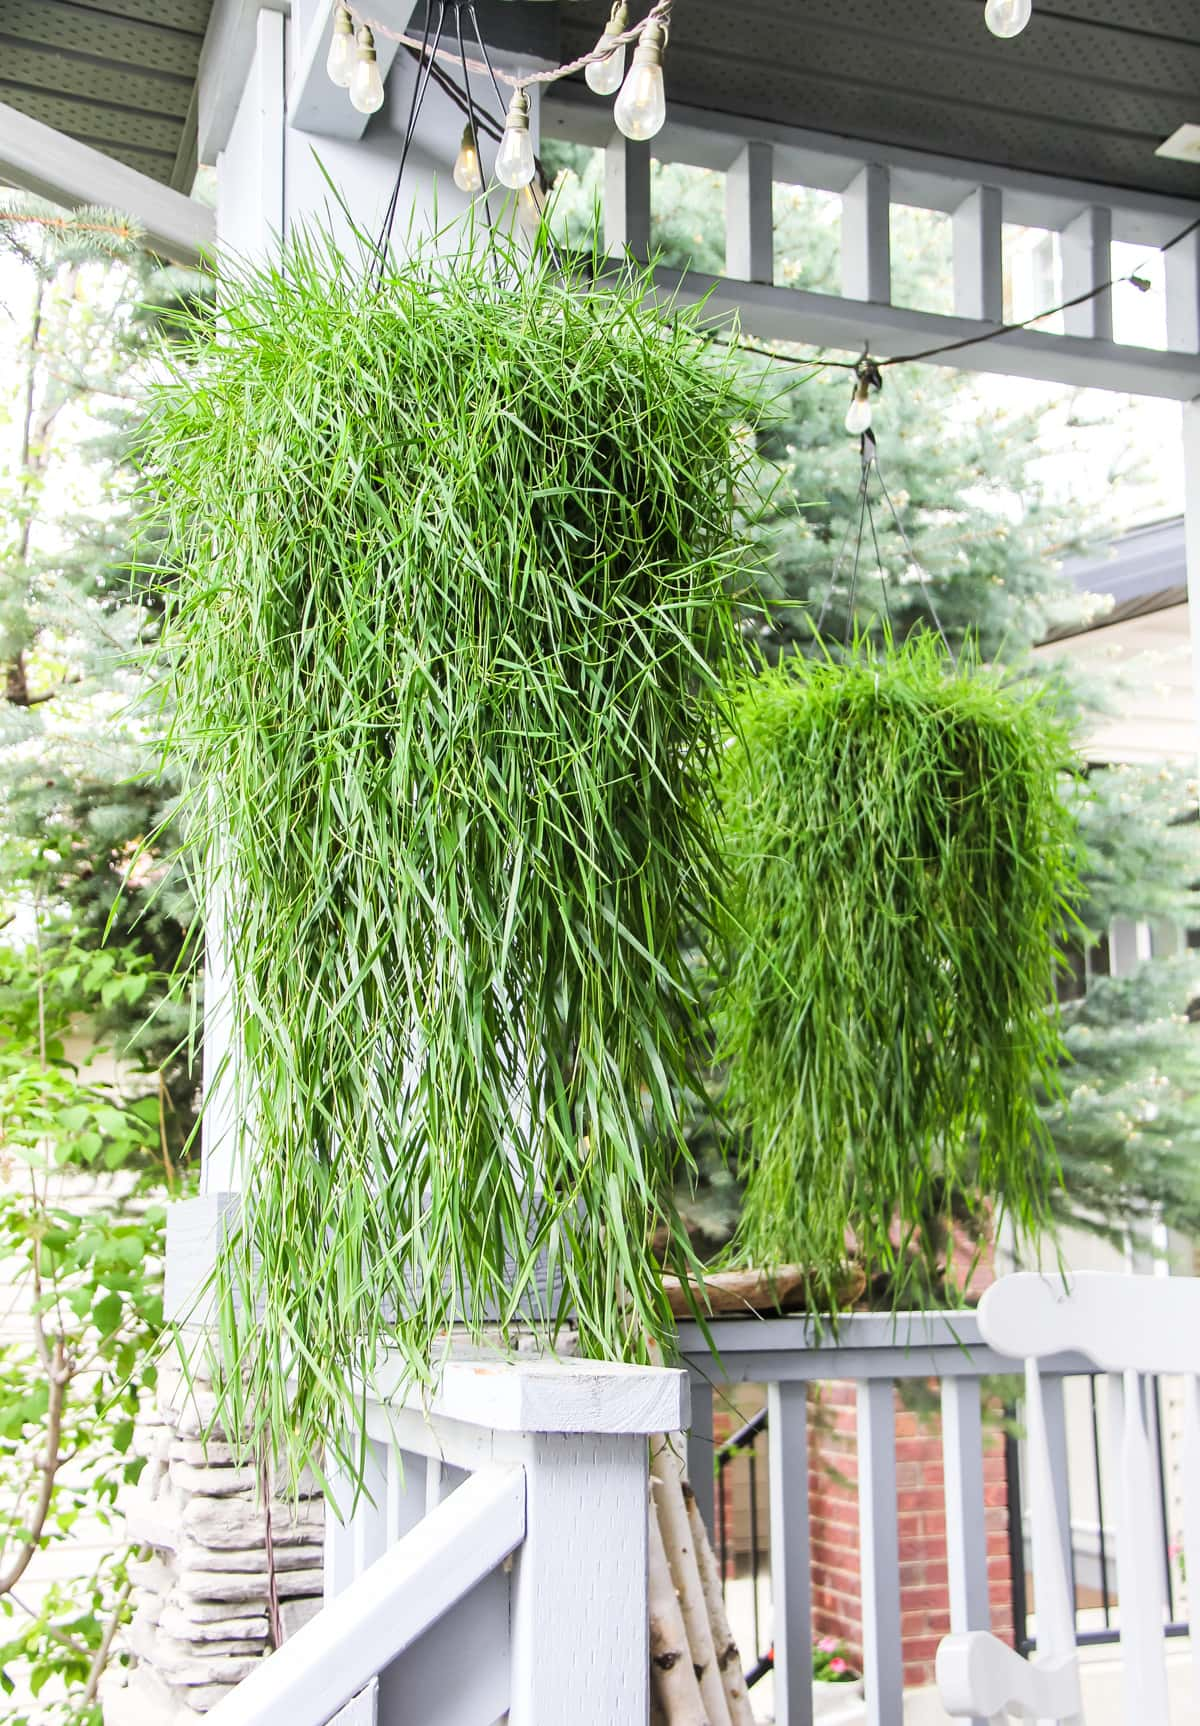 two hanging baskets of green grass